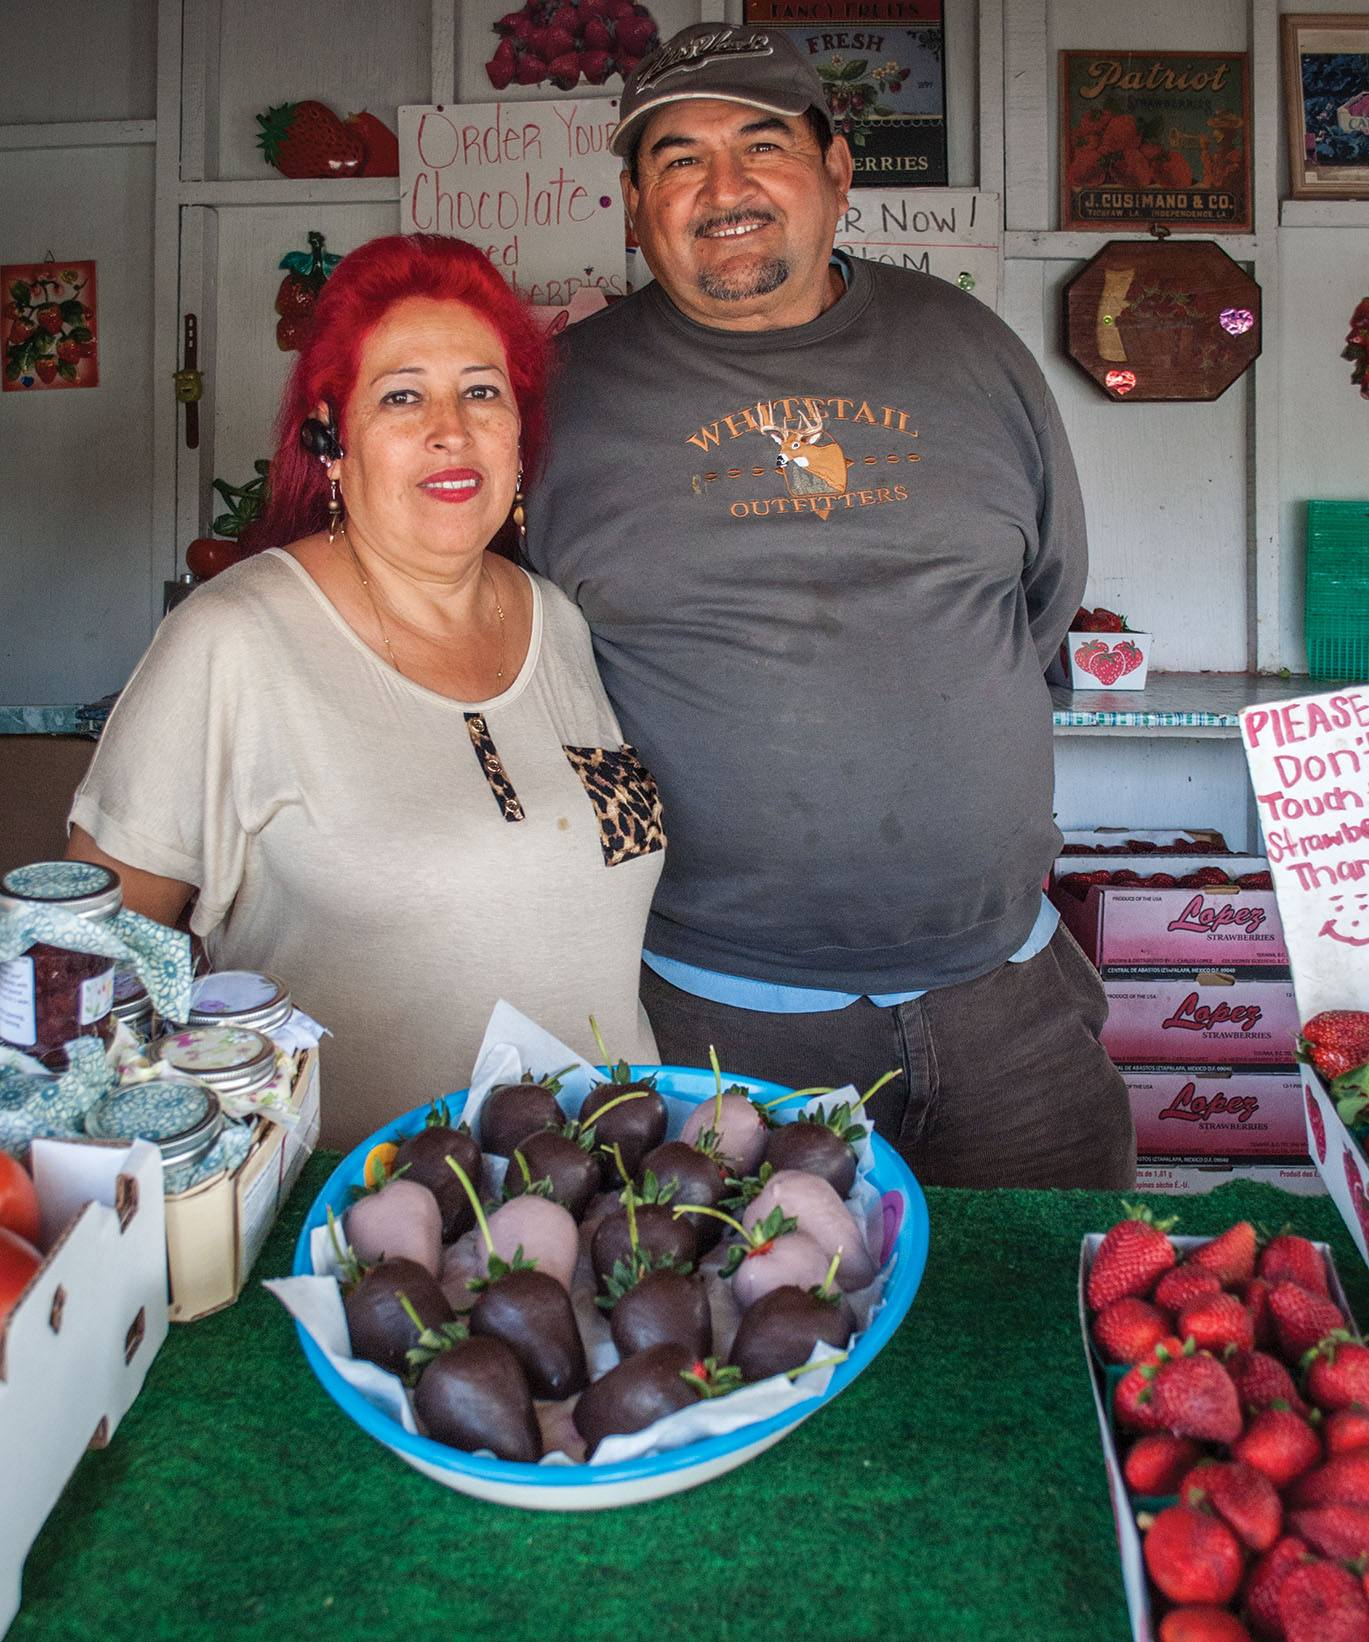 Strawberries: A family's fight for success